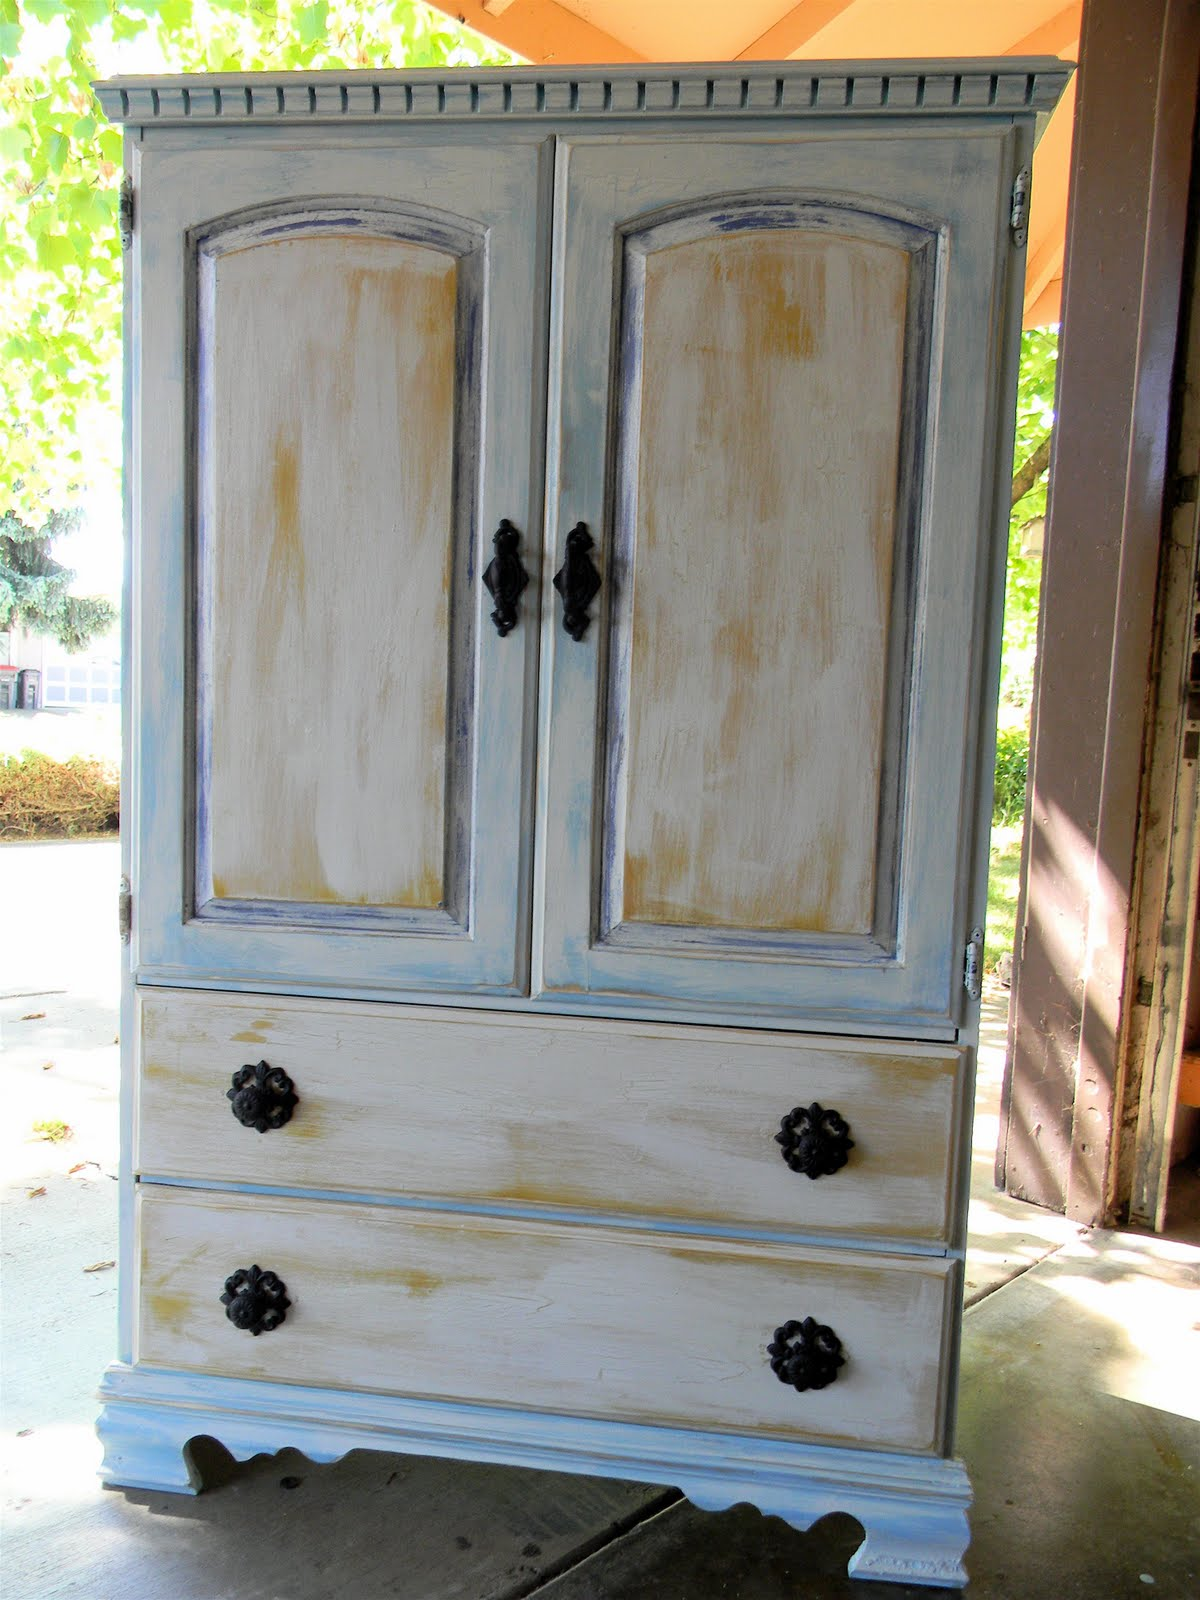 Shabby Chic Armoire emily's up-cycled furniture: shabby chic armoire before and after